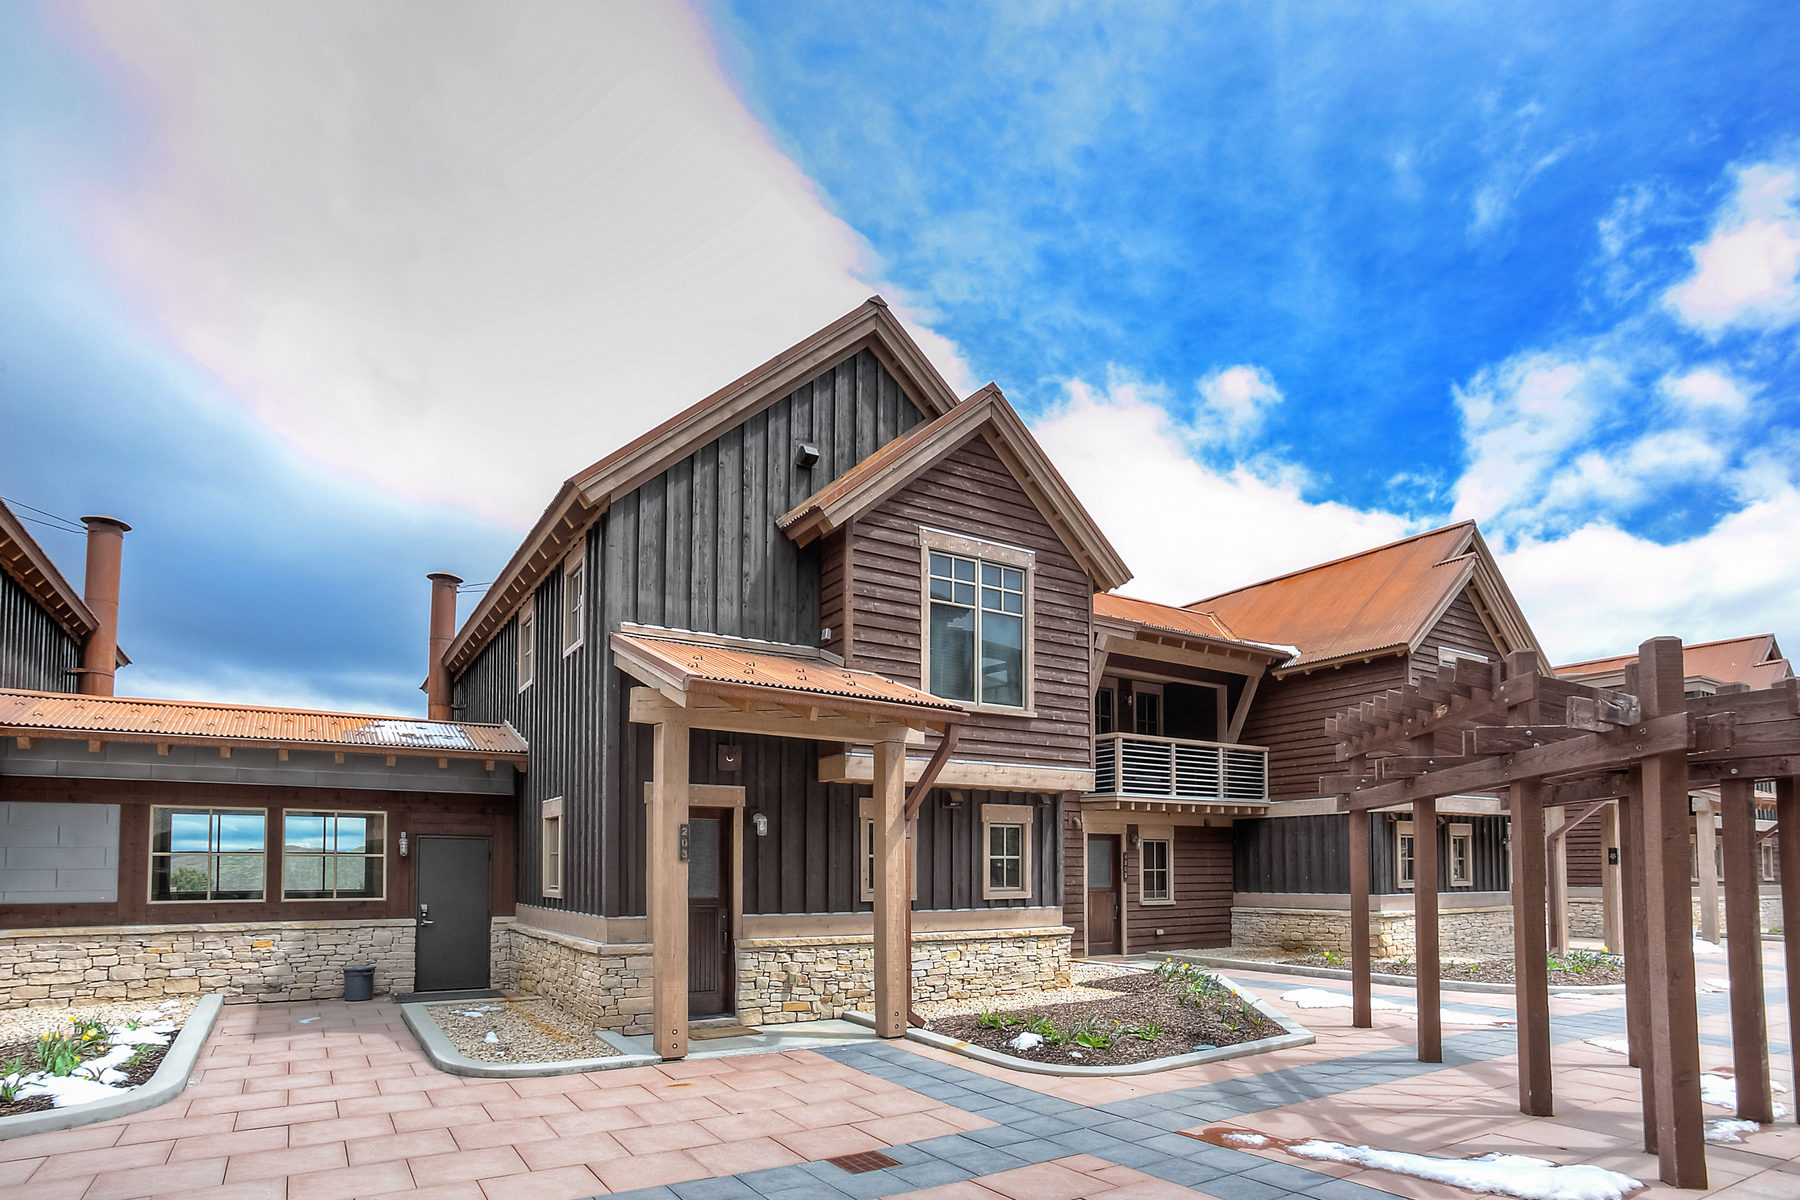 Townhouse for Sale at Quintessential Park City Lifestyle 1825 Three Kings Dr #203 Park City, Utah 84060 United States